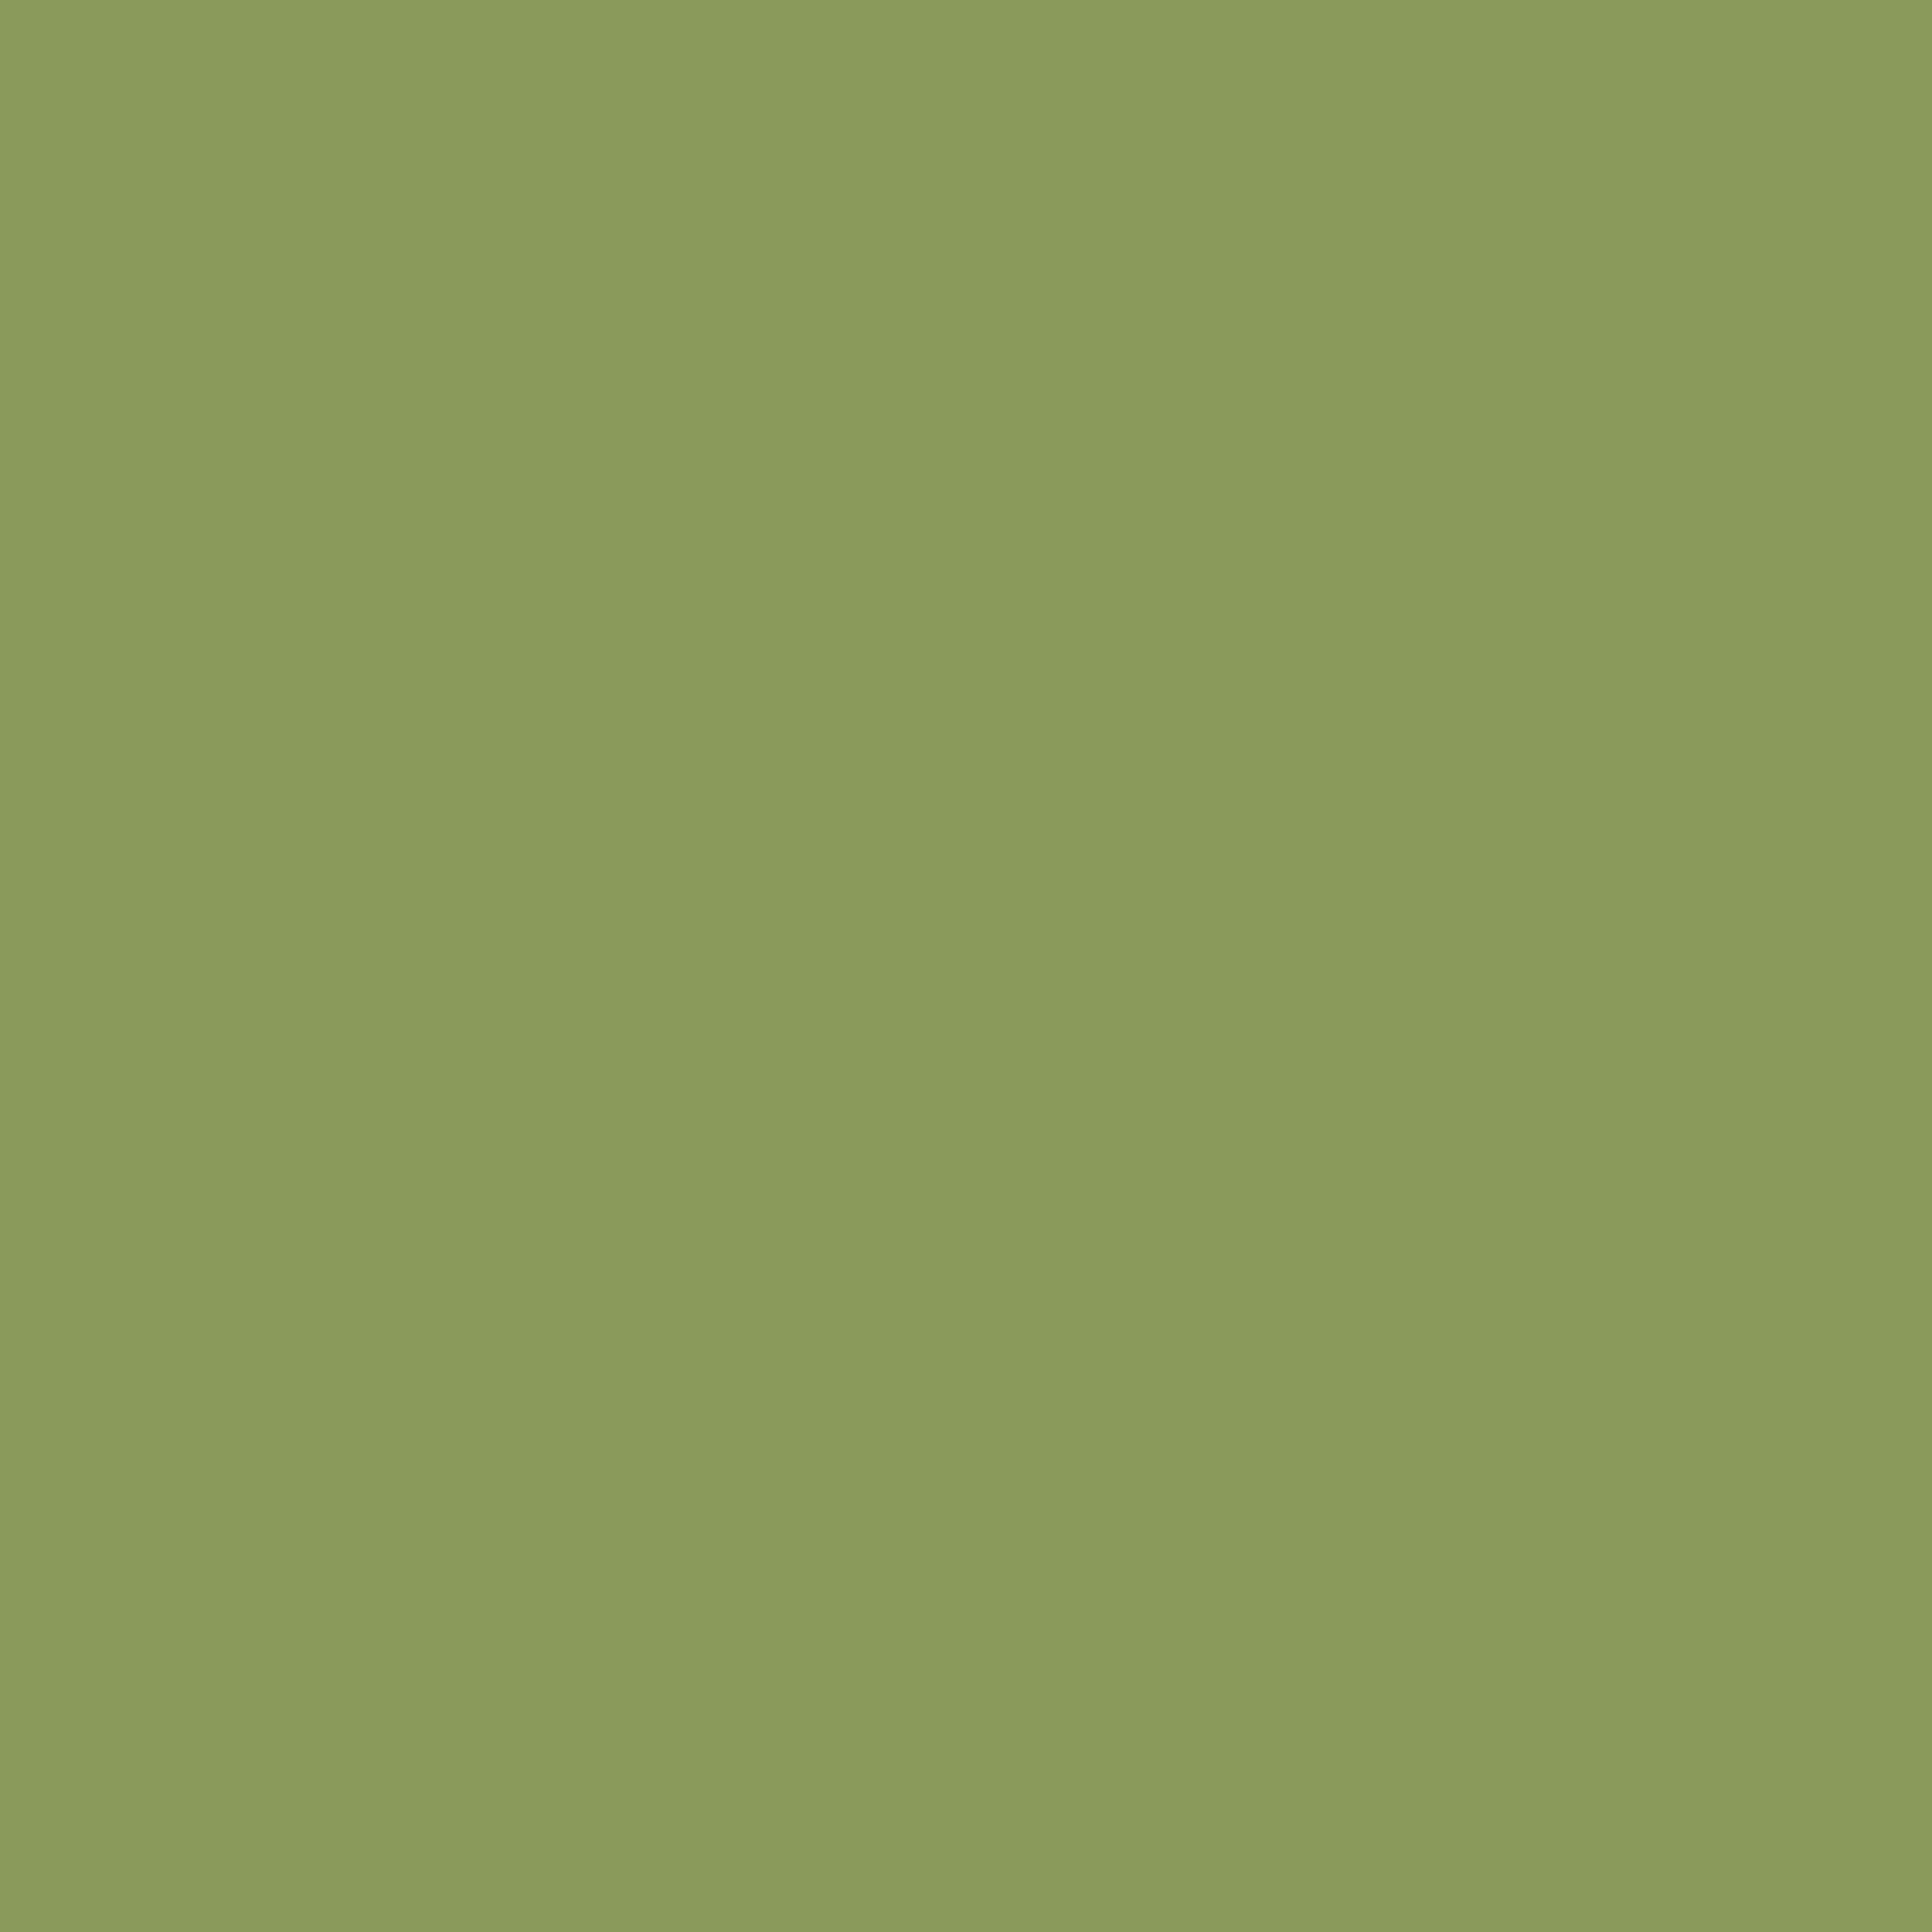 3600x3600 Moss Green Solid Color Background